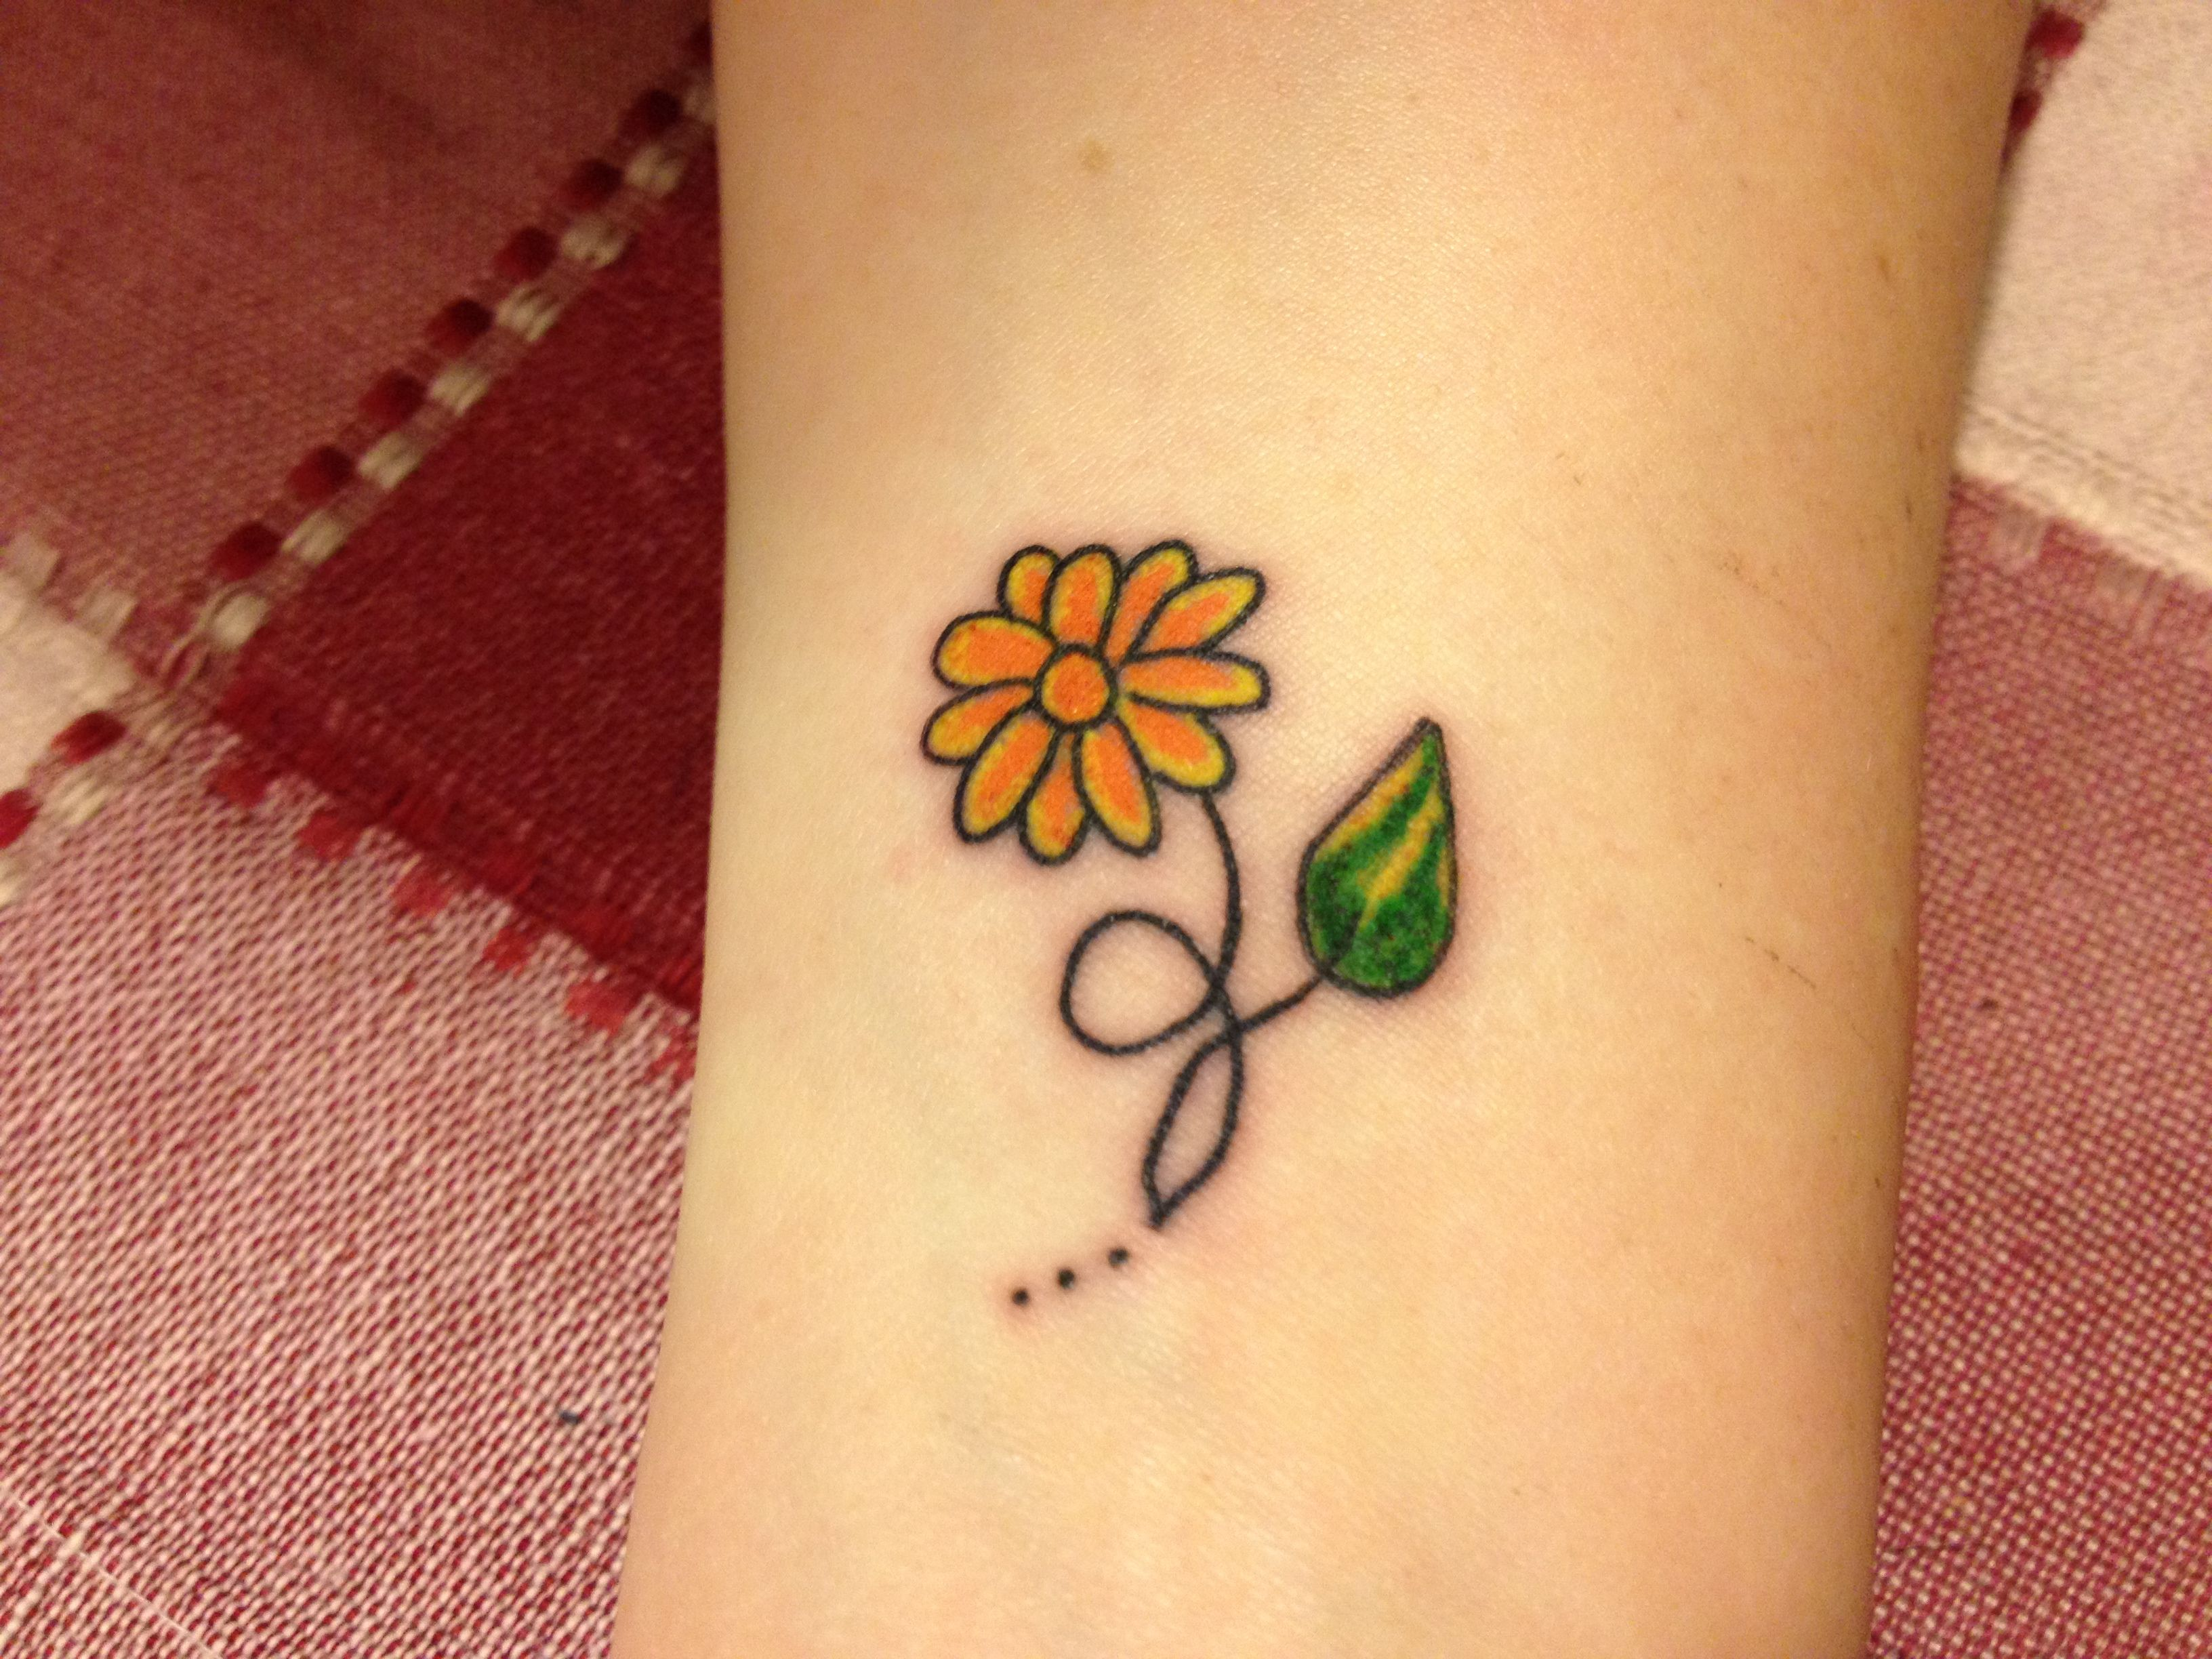 Daisy tattoo in memory of my grandma. Daisy tattoo